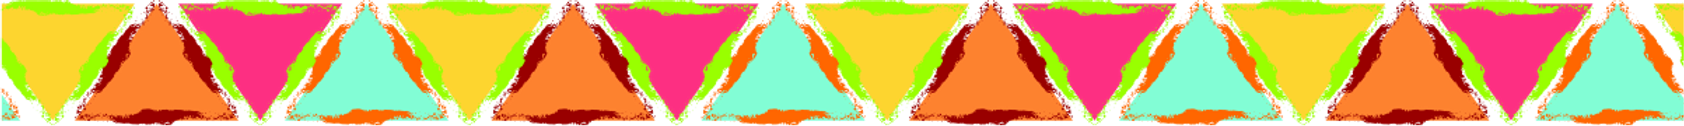 Colorful Triangle Border 2.png